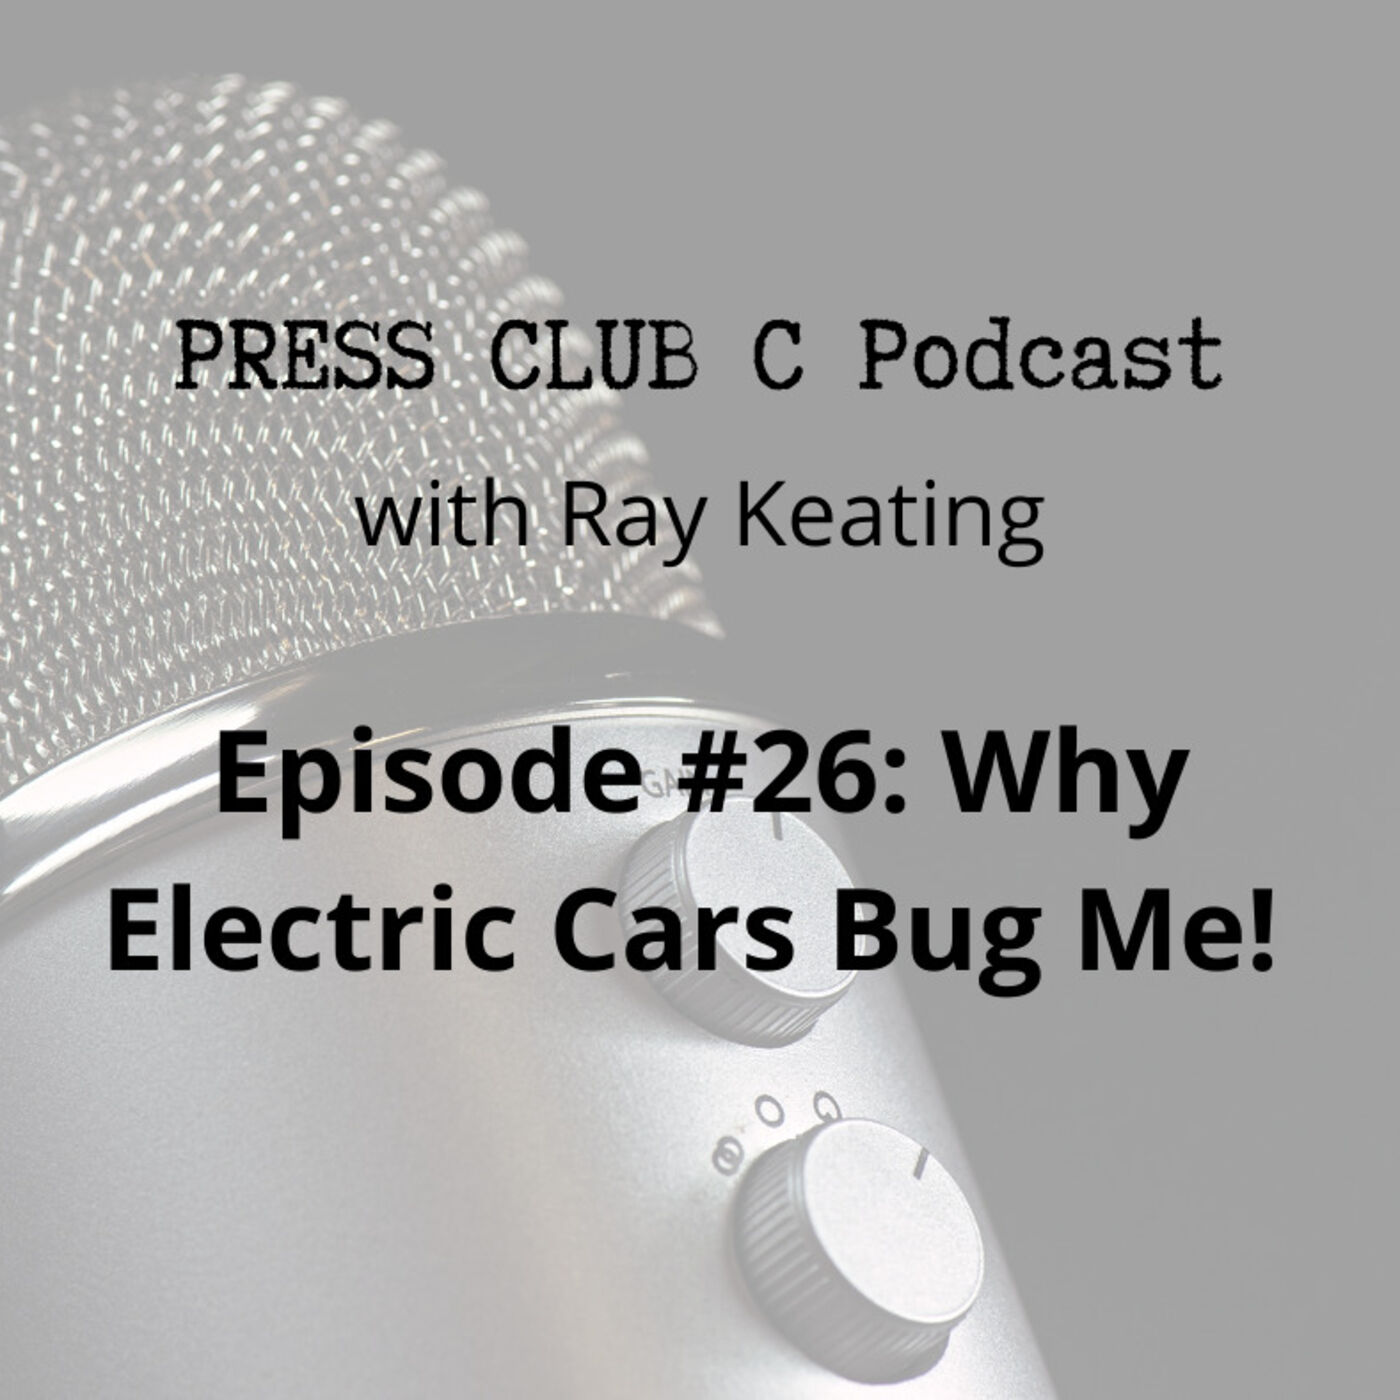 Episode #26: Why Electric Cars Bug Me!